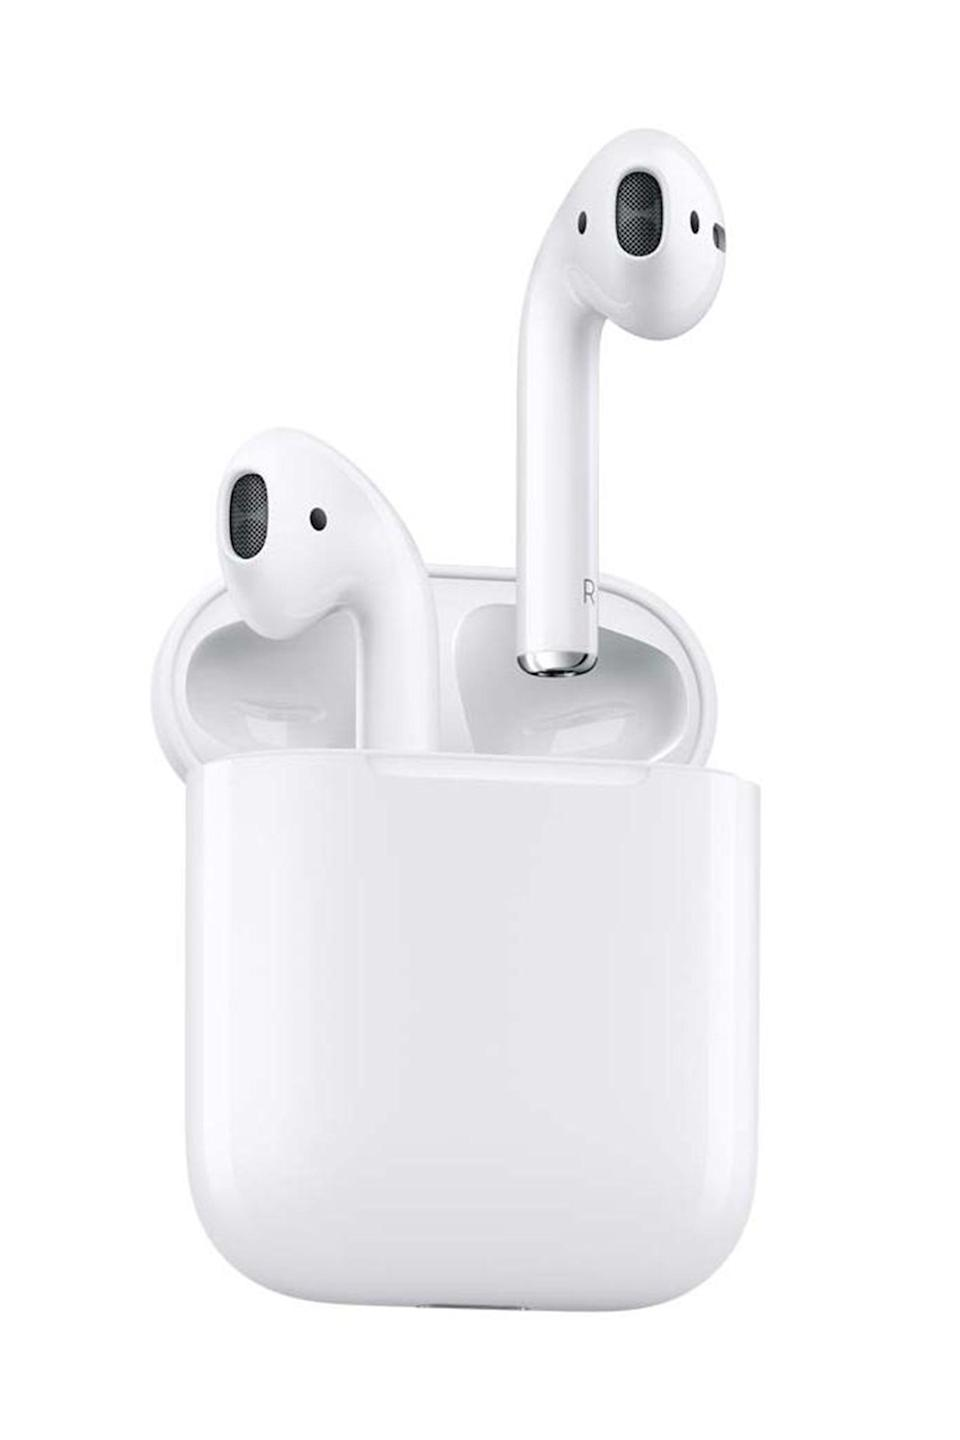 "<p><strong>Apple</strong></p><p>amazon.com</p><p><strong>$159.99</strong></p><p><a href=""https://www.amazon.com/dp/B07PYLT6DN?tag=syn-yahoo-20&ascsubtag=%5Bartid%7C10051.g.34208929%5Bsrc%7Cyahoo-us"" rel=""nofollow noopener"" target=""_blank"" data-ylk=""slk:Shop Now"" class=""link rapid-noclick-resp"">Shop Now</a></p><p>Who doesn't own a pair? </p>"